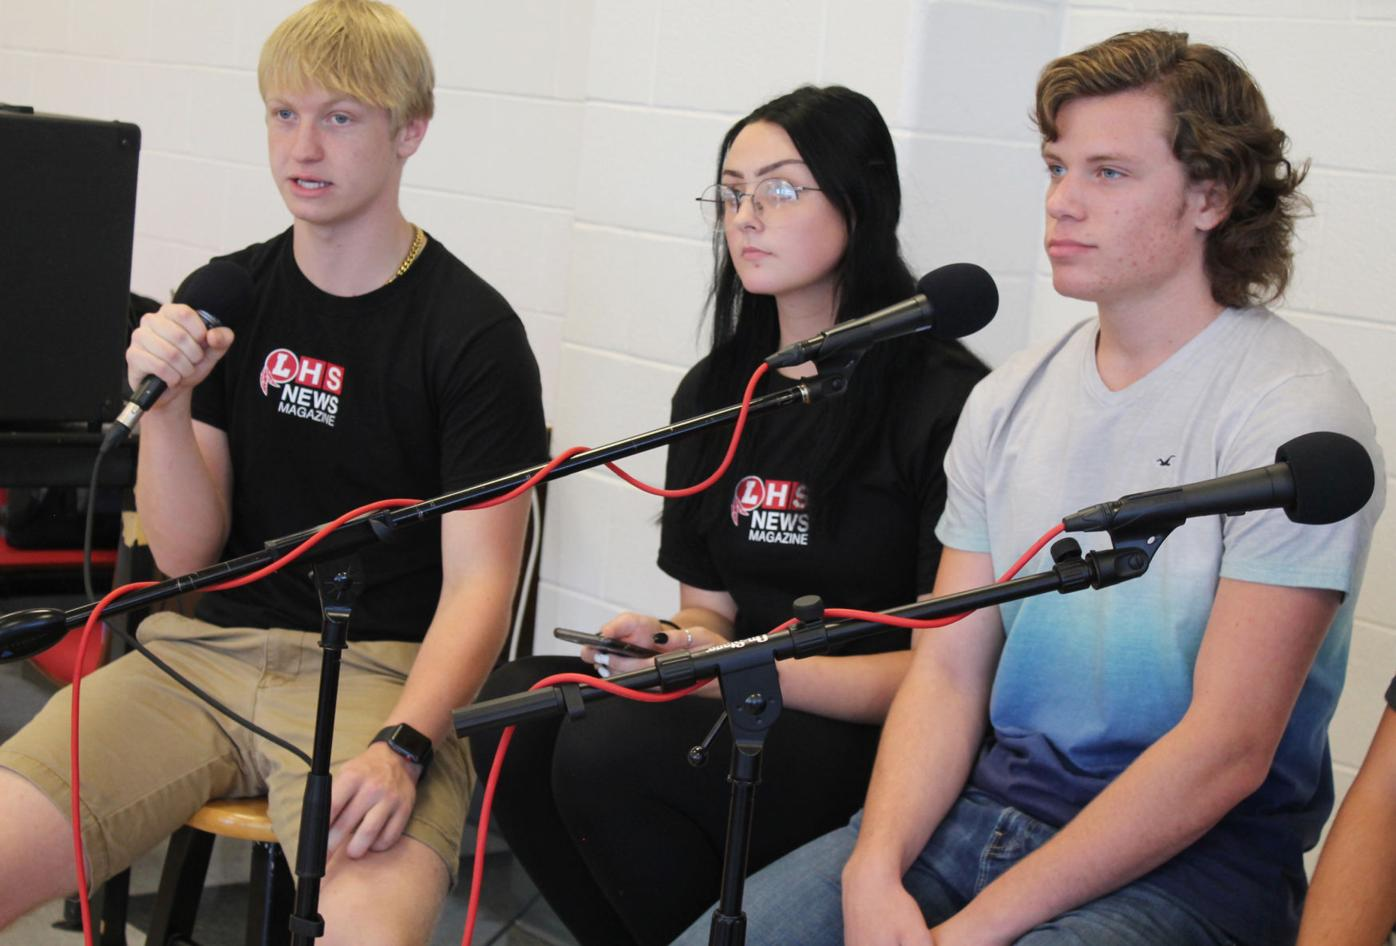 LHS students collaborate on music